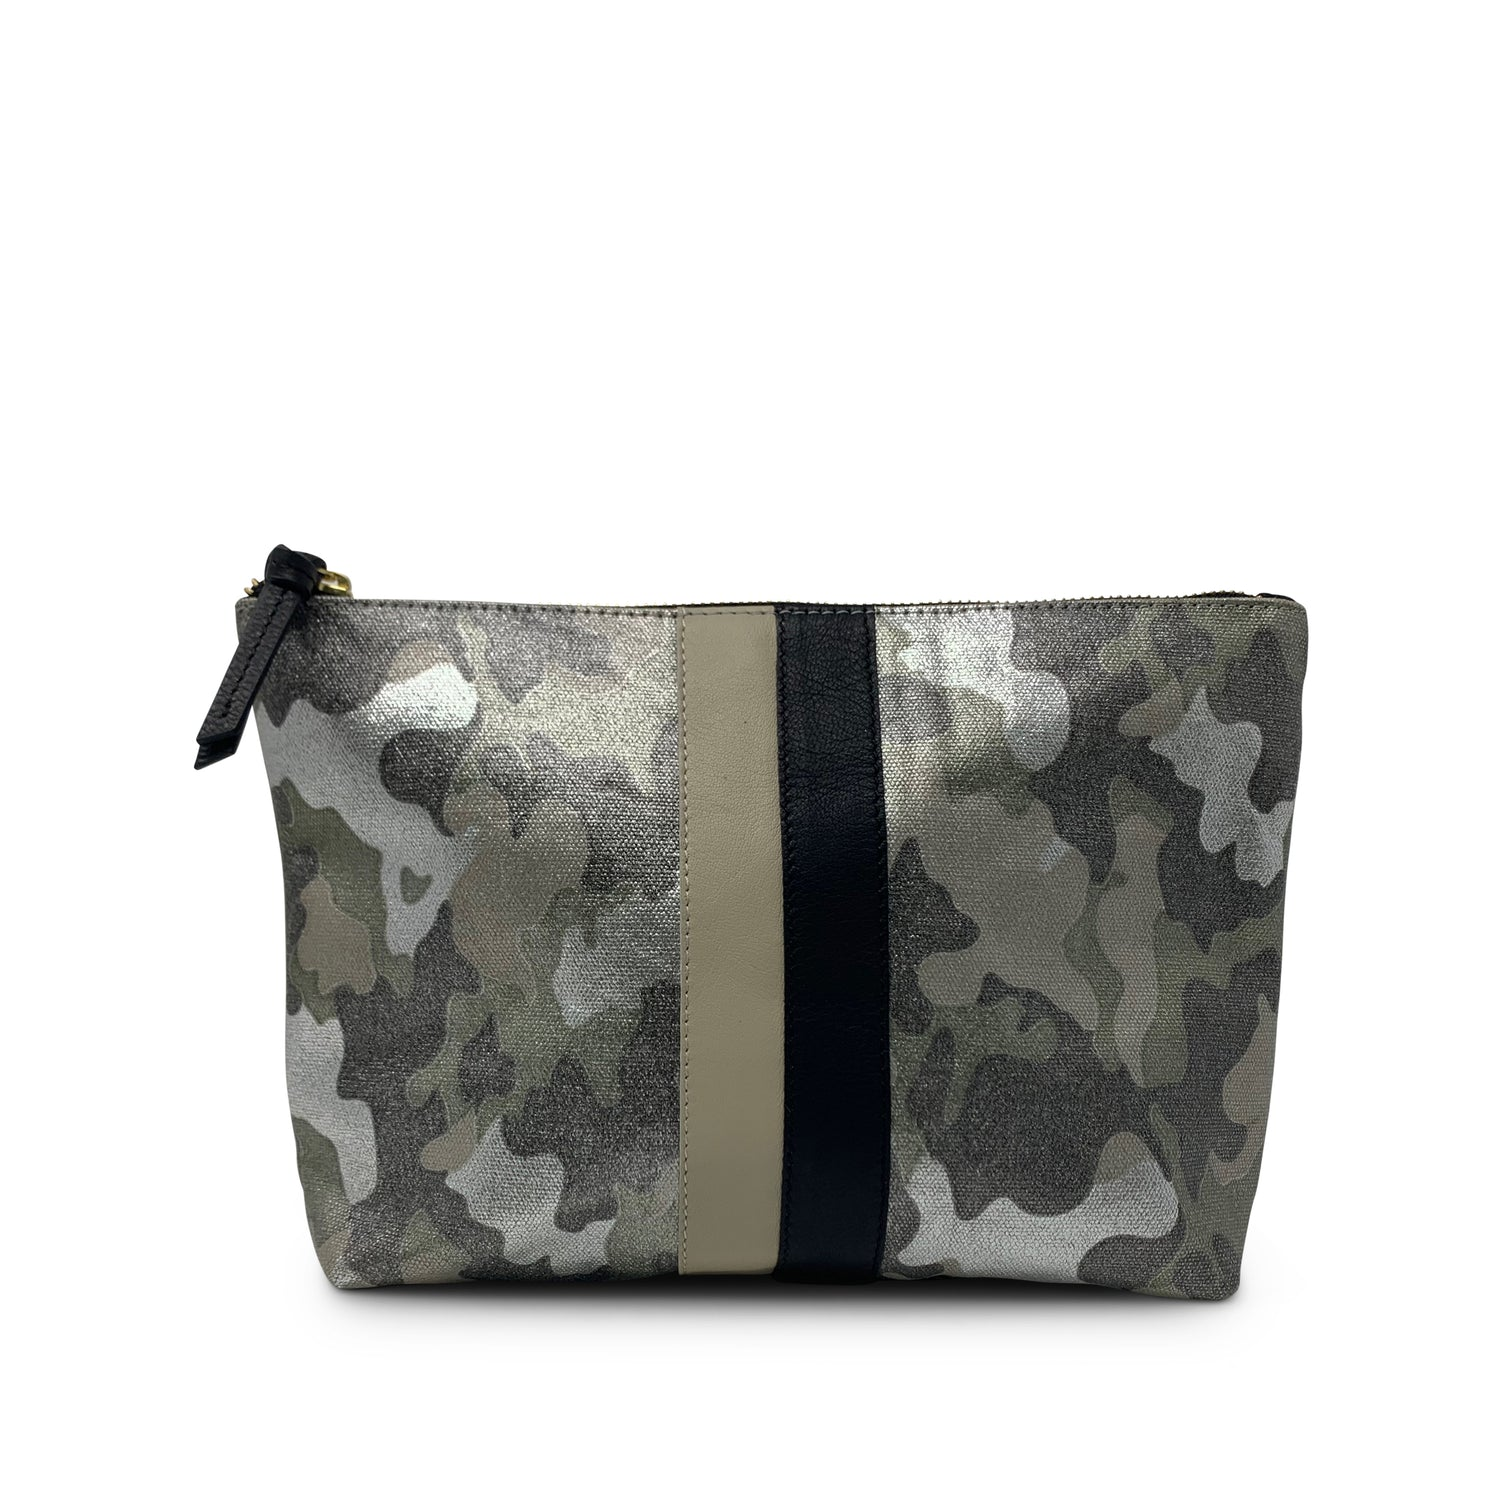 Metallic Camouflage Canvas Pouch/Clutch